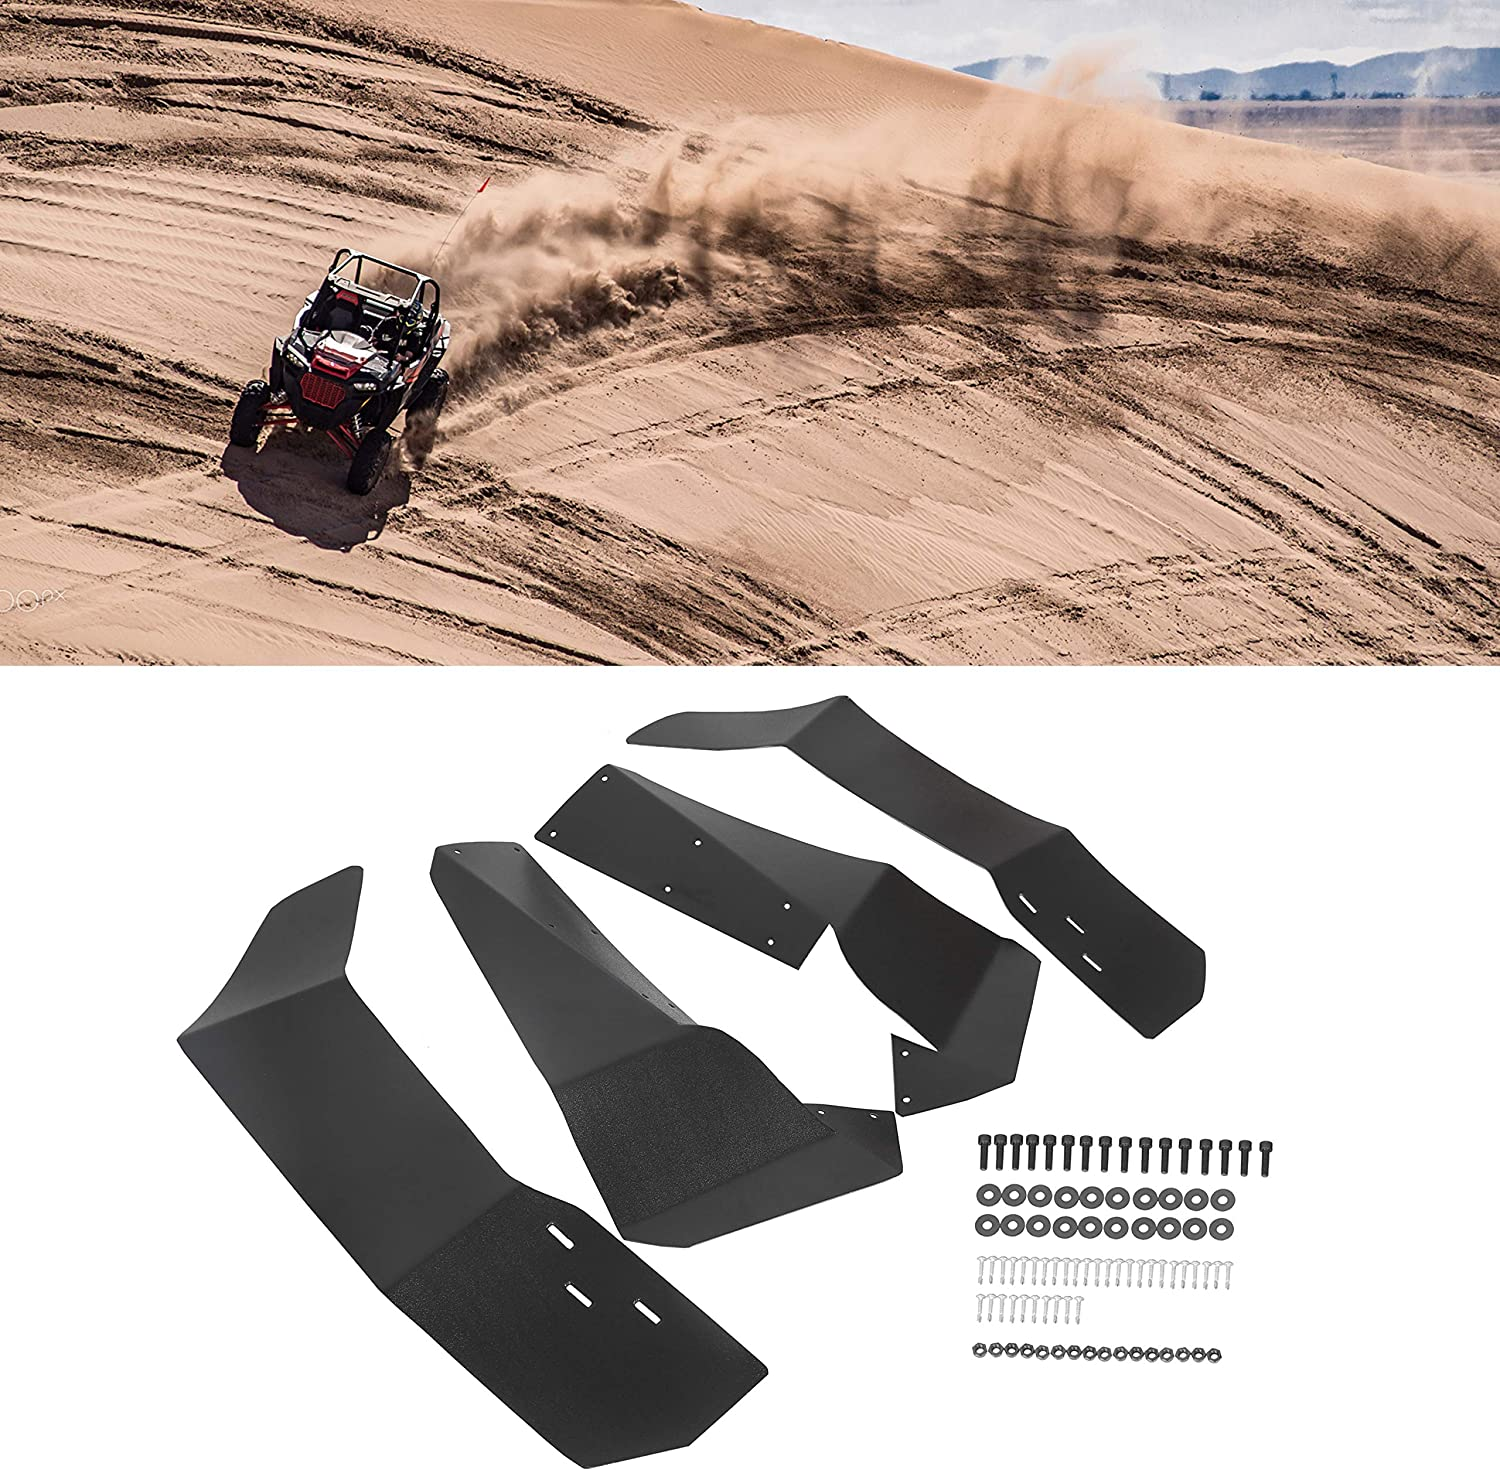 S 4 900 2015-2019 Front and Rear Mud Flaps Set HJSIUTV Extended Fender Flares Mud Guards Replacement for Polaris RZR S 900 S 1000